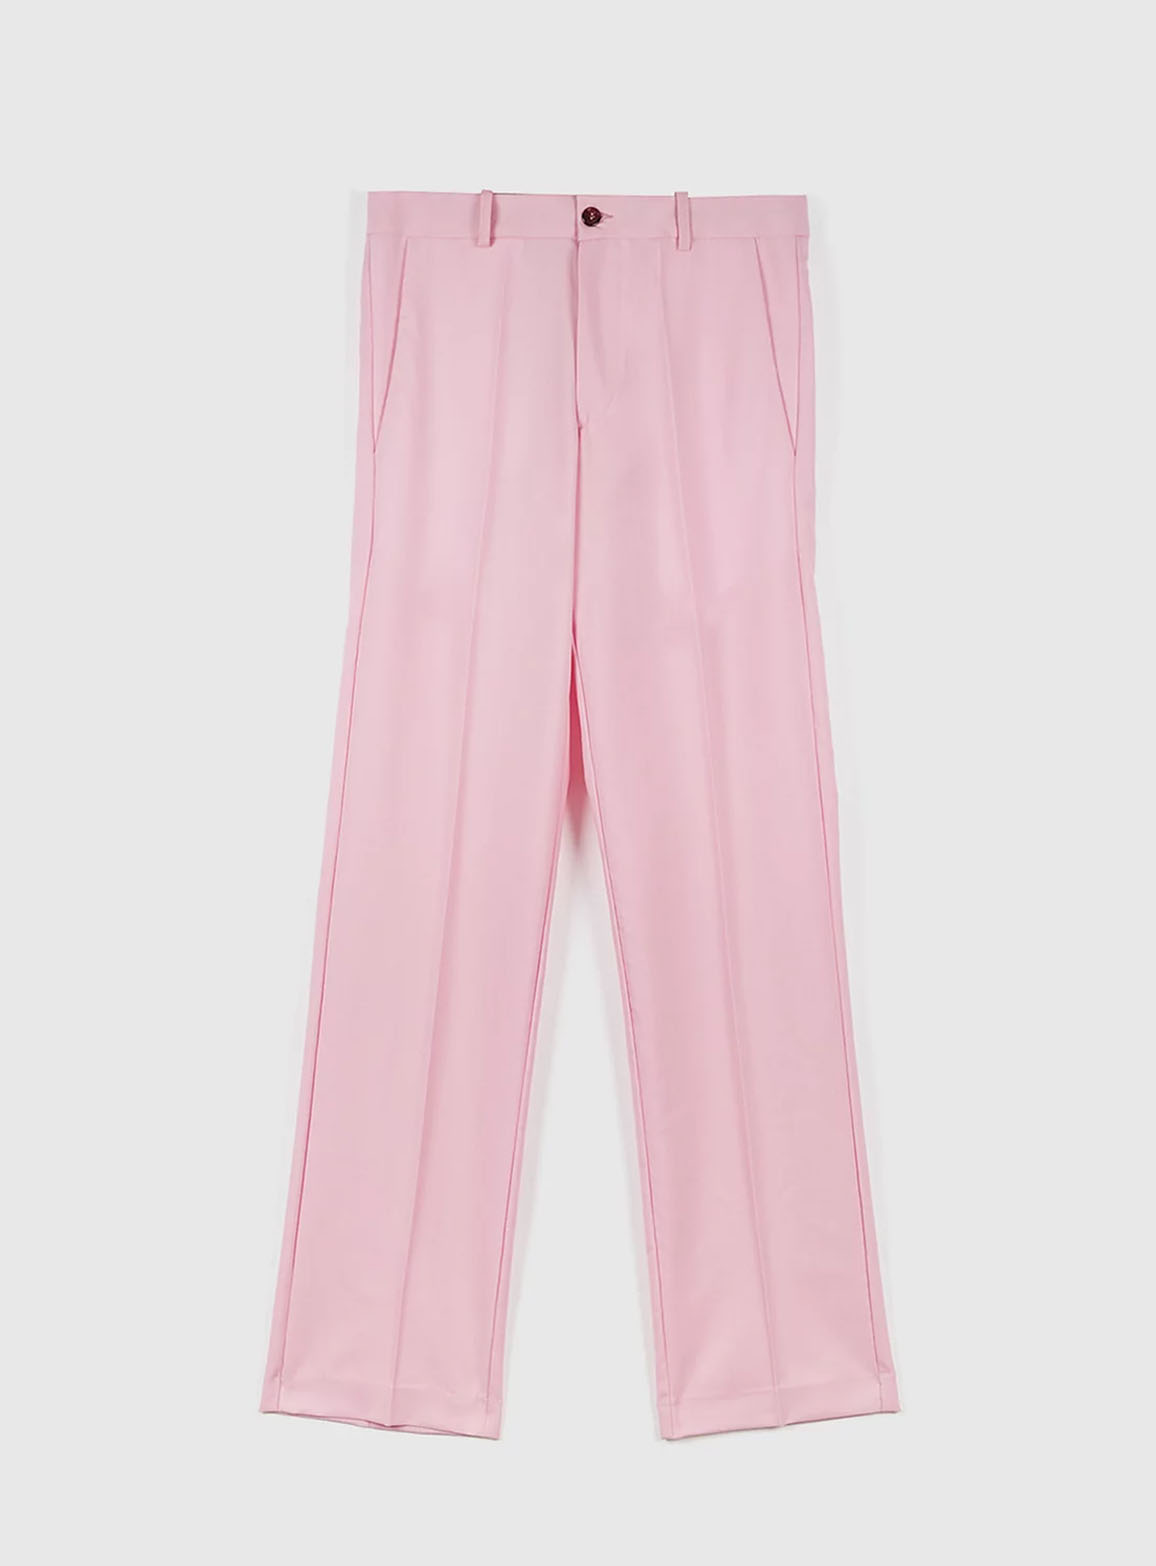 Fred pants pale pink